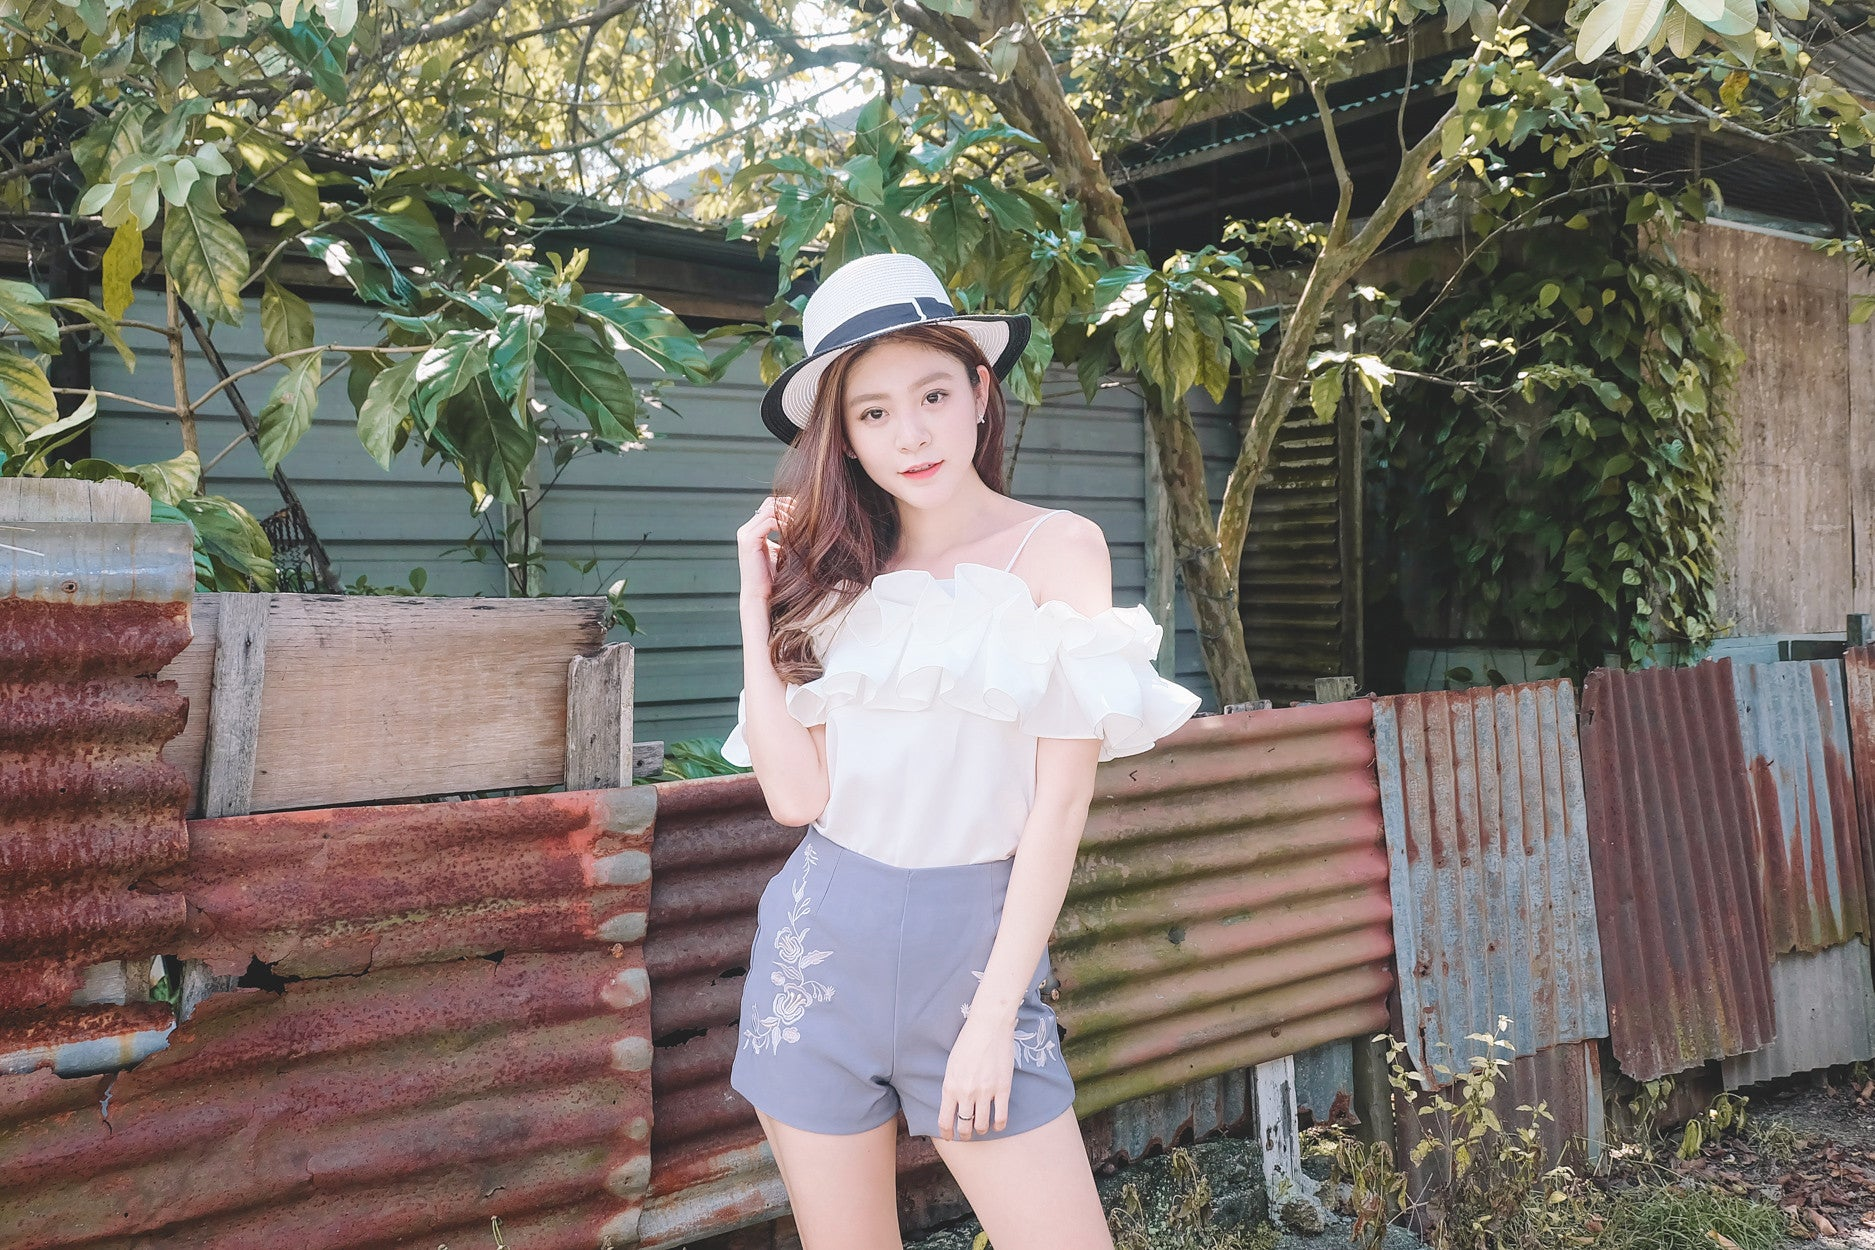 [Restocked] Origami Offsie Top in White